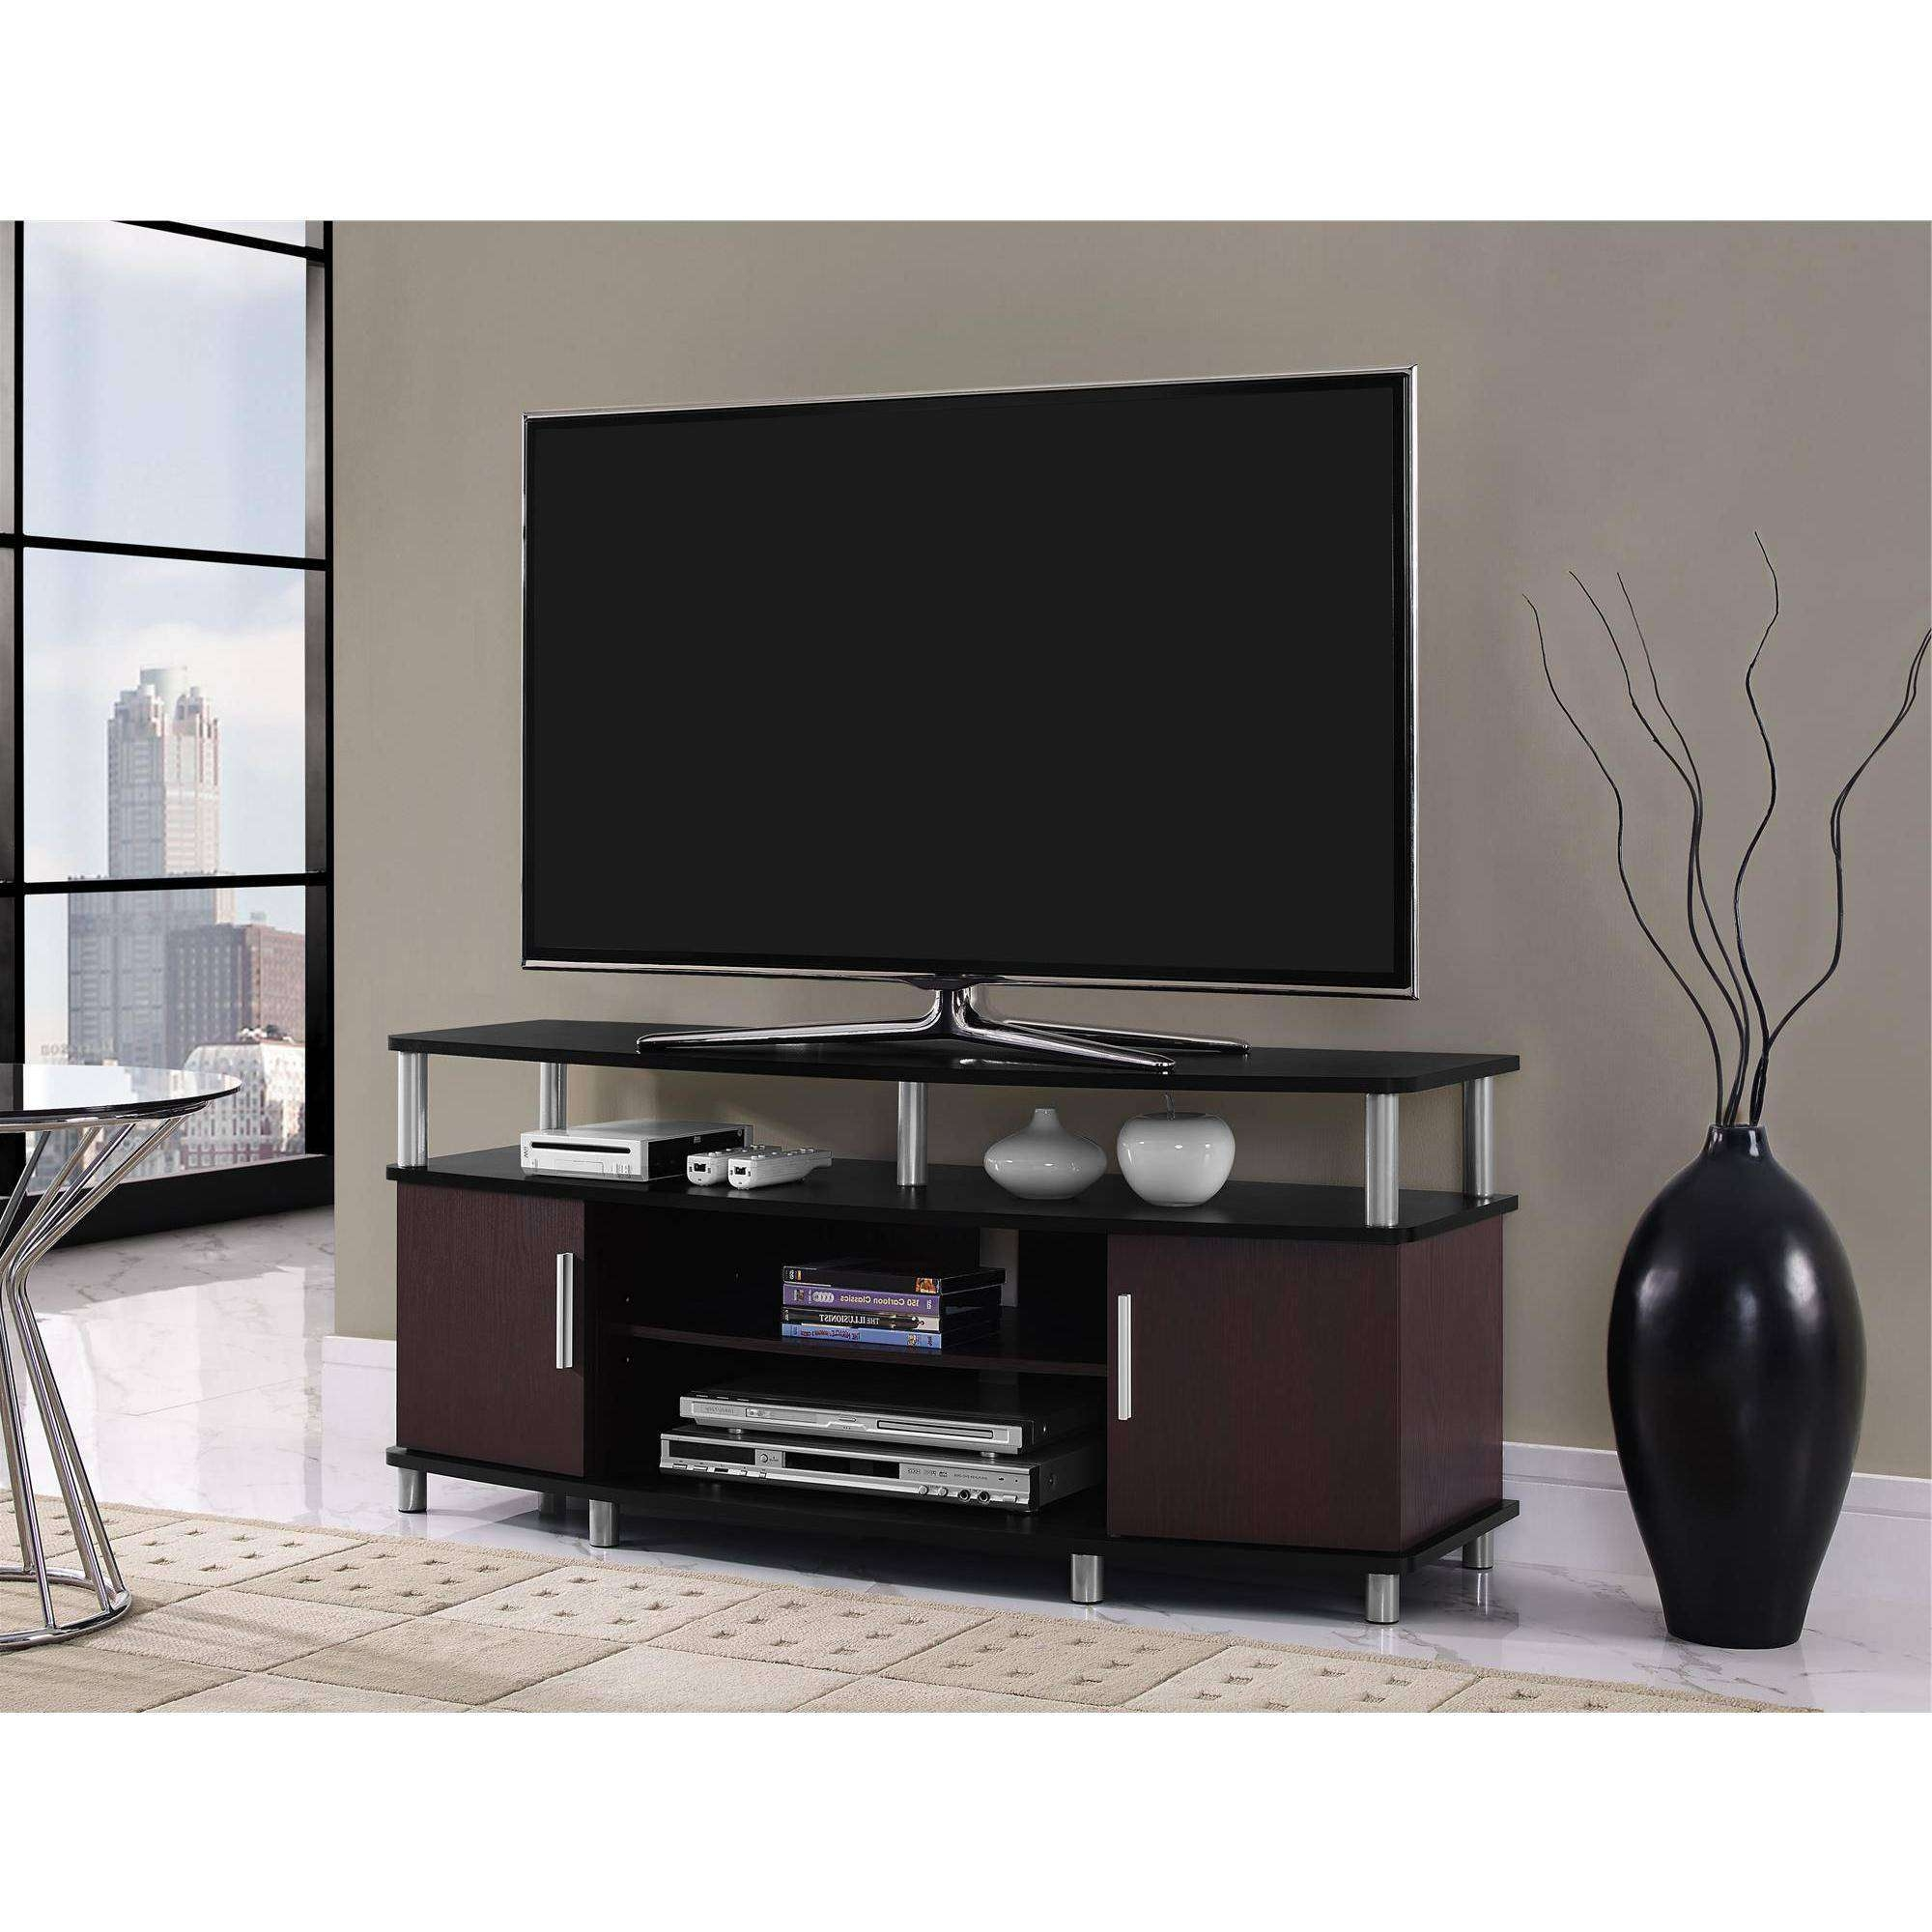 Fancy Tv Stands For 40 Inch Tv 80 In Home Decoration Ideas With Tv Throughout Fancy Tv Stands (View 5 of 15)